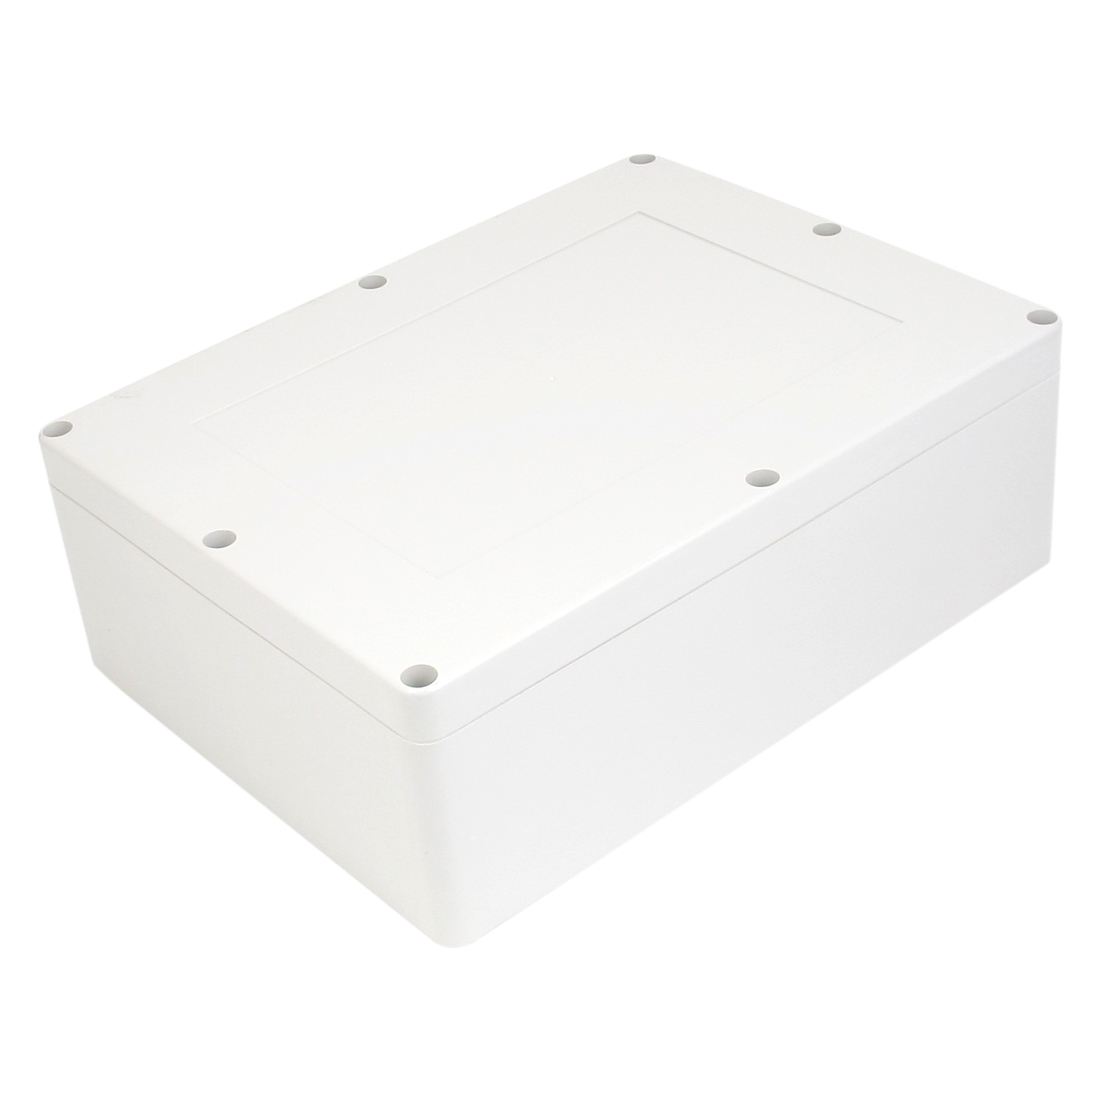 320mmx240mmx110mm Plastic Water Resistant Surface Mounting Sealed Electric Power Protector Junction Box Case